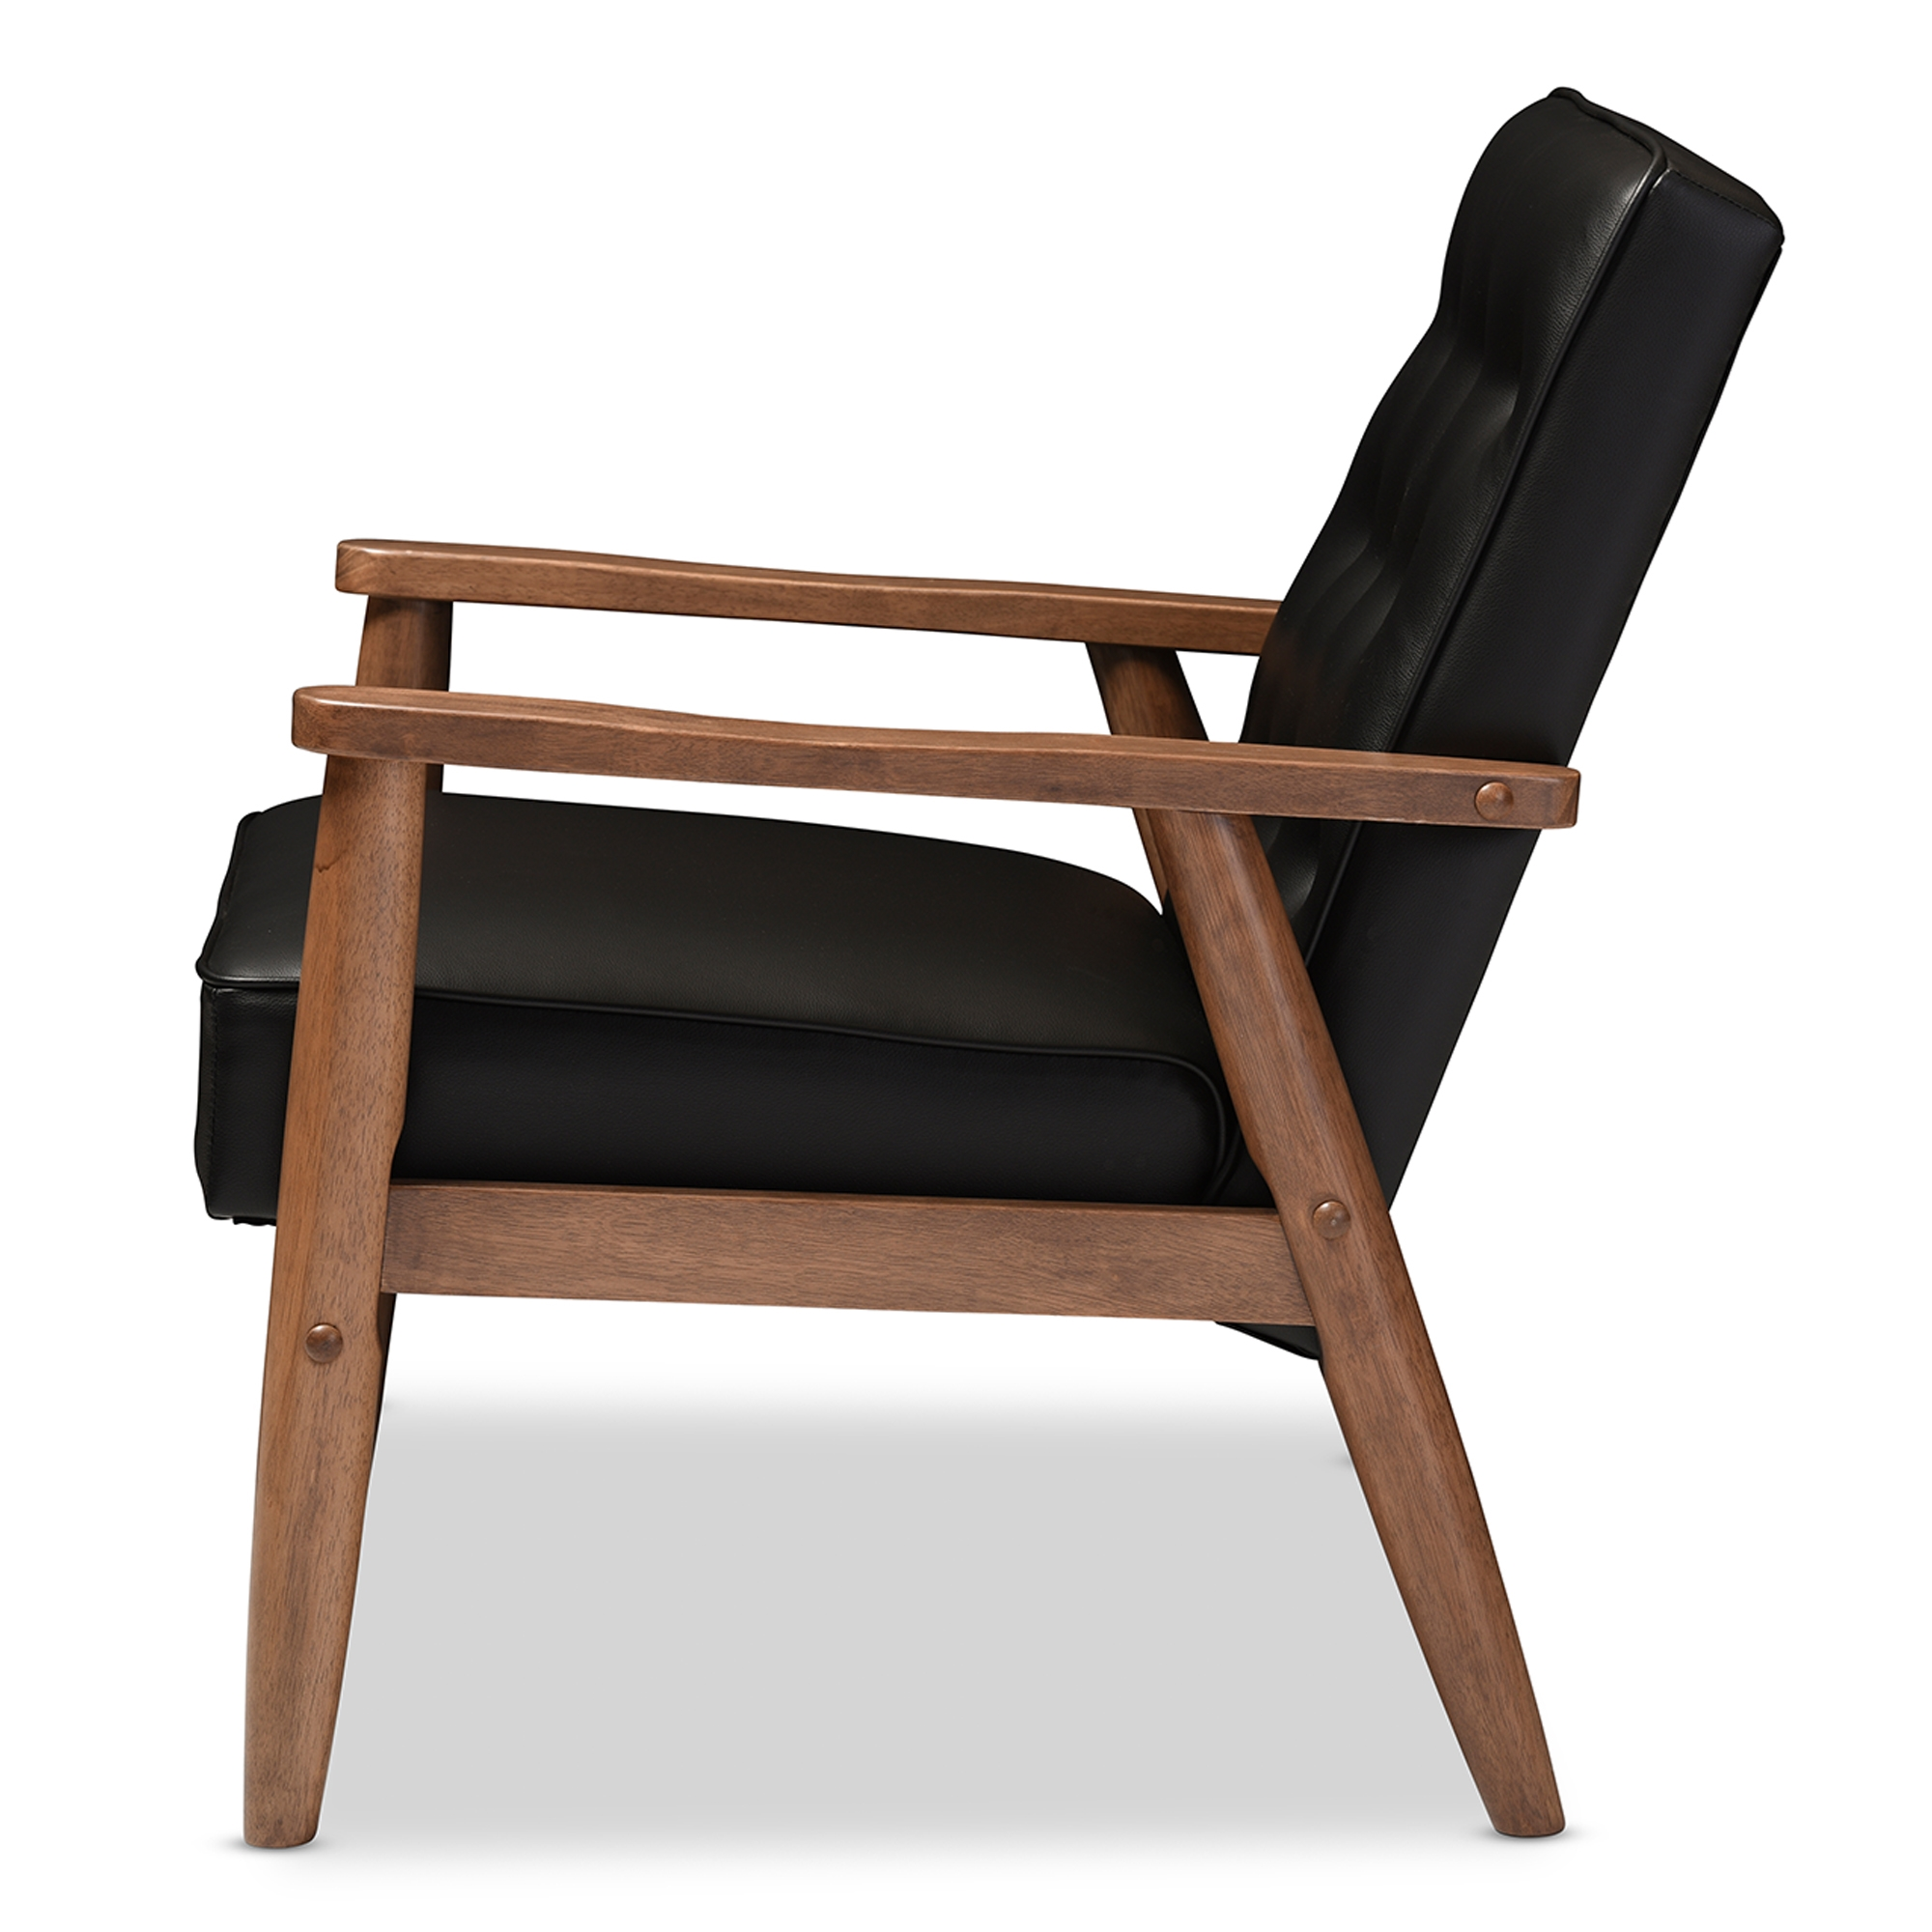 ... Baxton Studio Sorrento Mid Century Retro Modern Black Faux Leather  Upholstered Wooden Lounge Chair ...